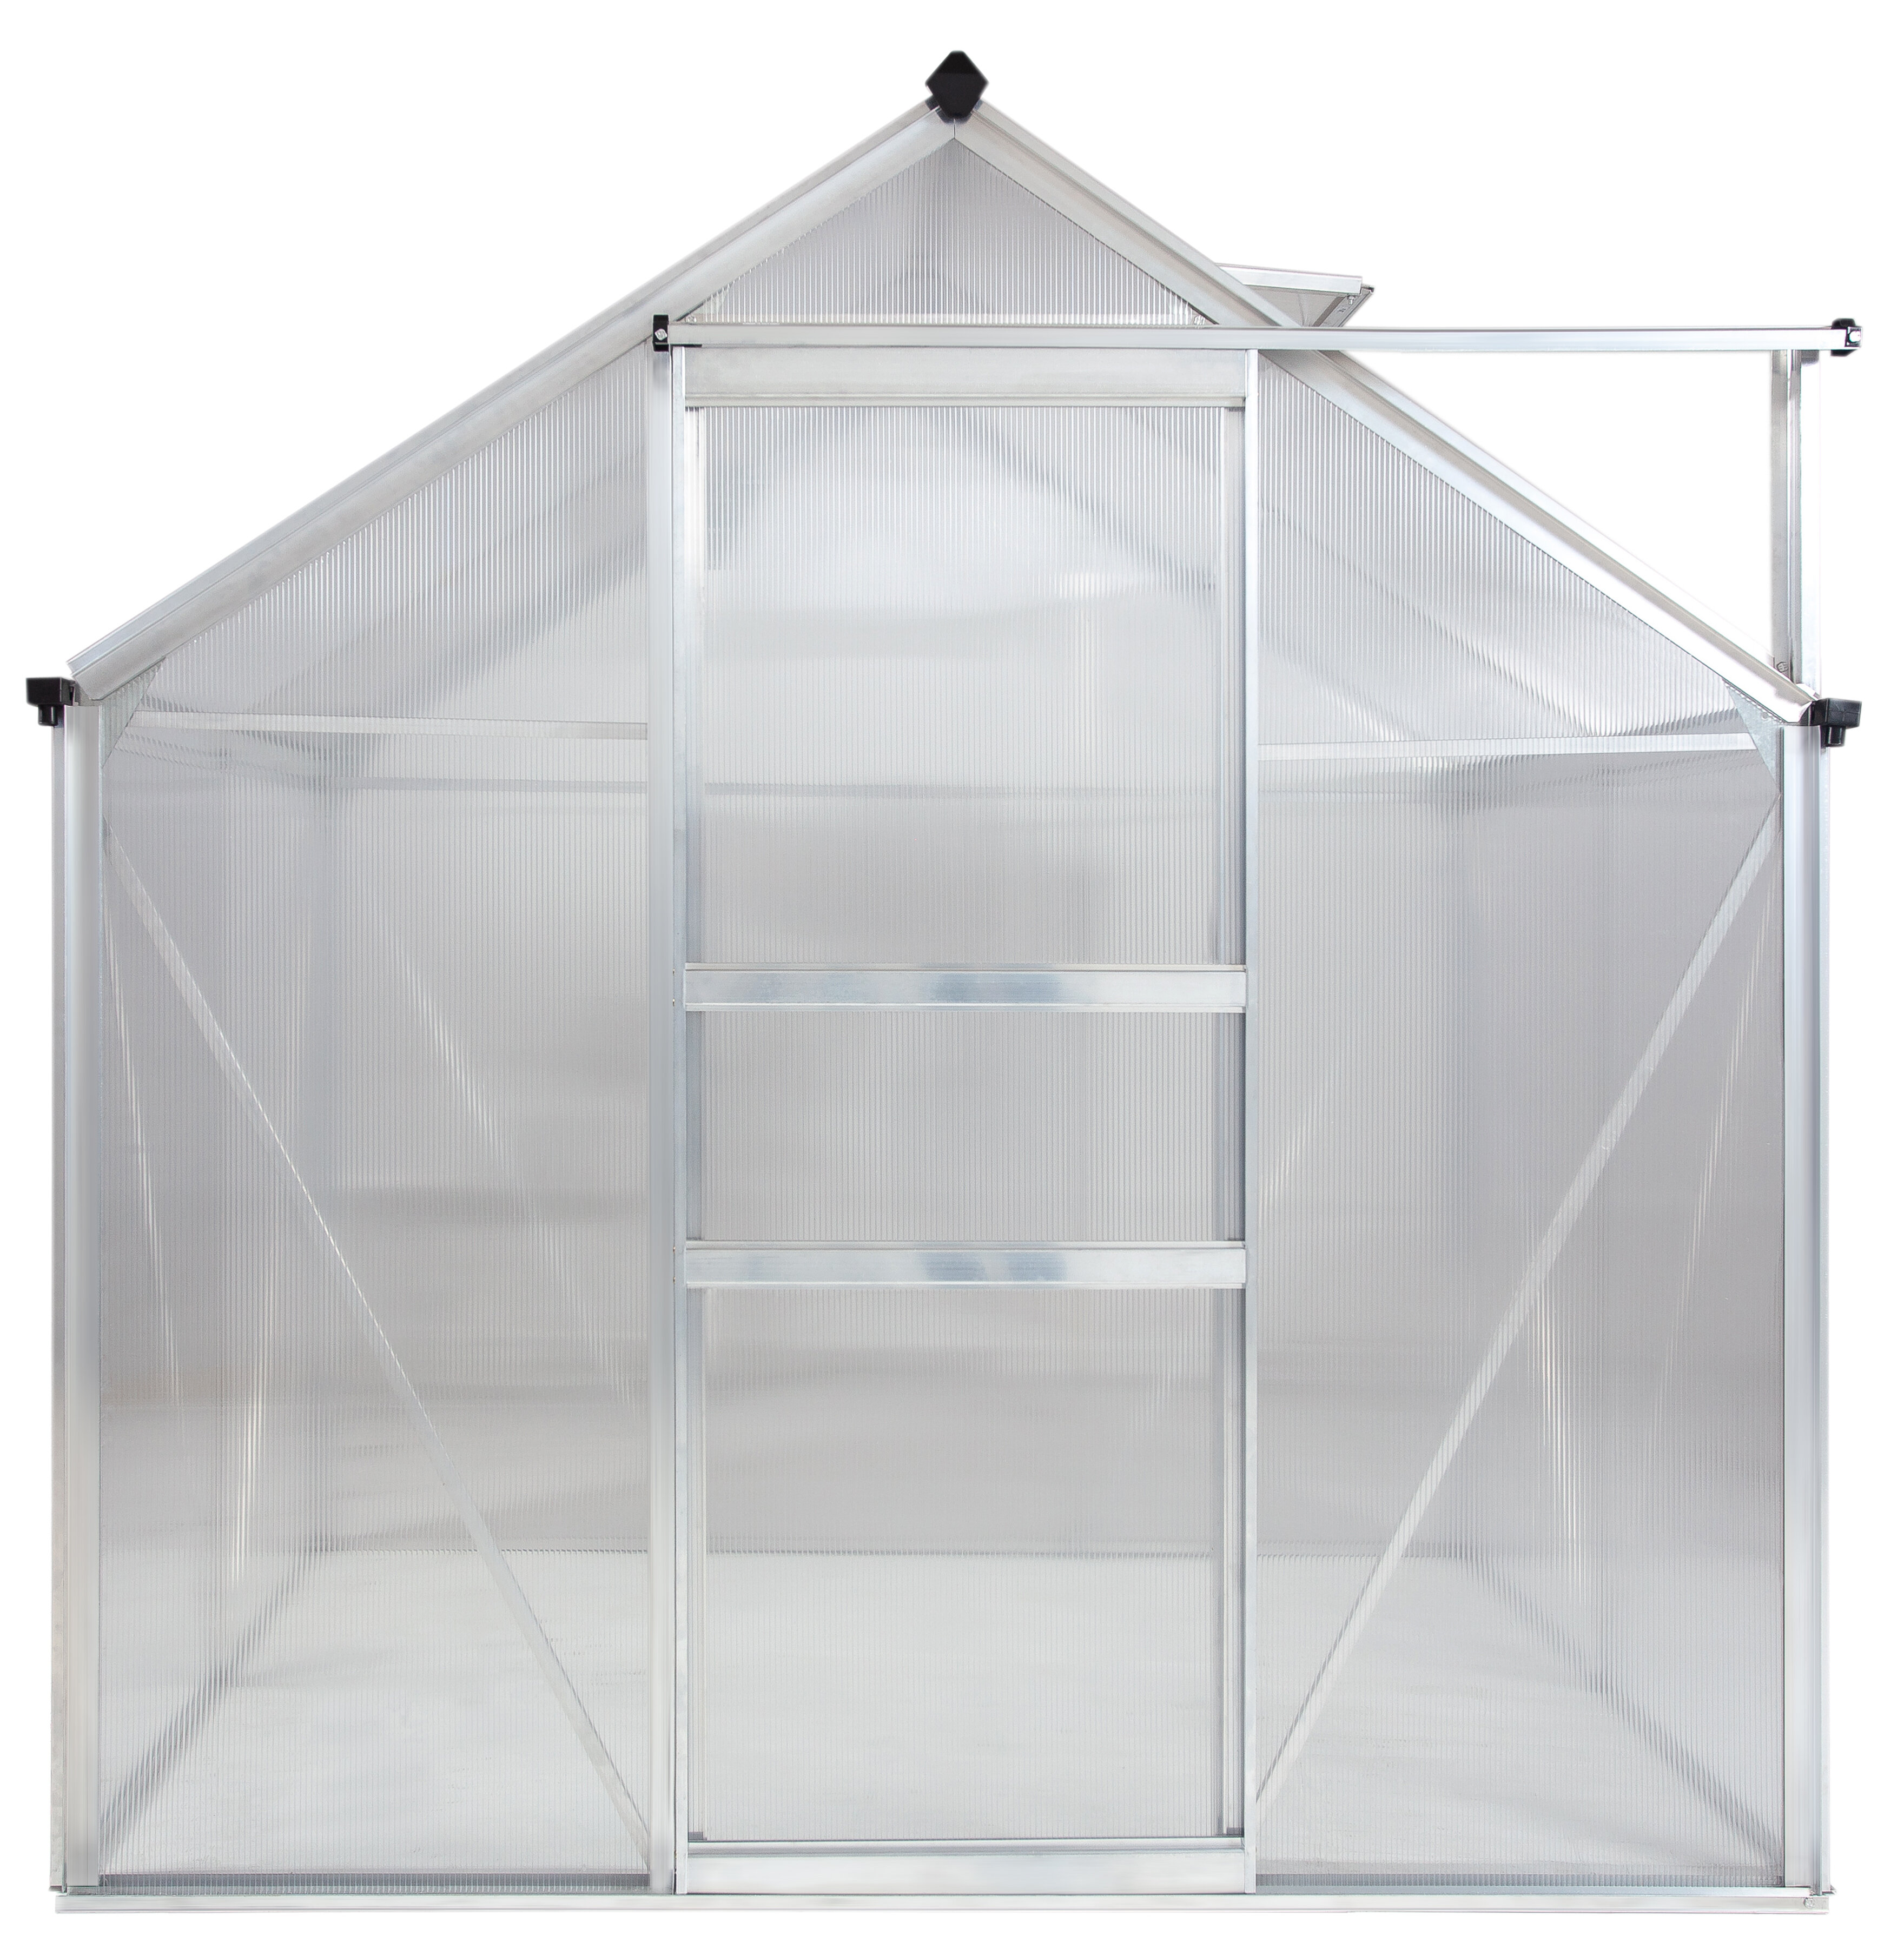 Ogrow Aluminium Greenhouse Walk In 6 X 4 With Sliding Door And Adjustable Roof Vent Reviews Wayfair